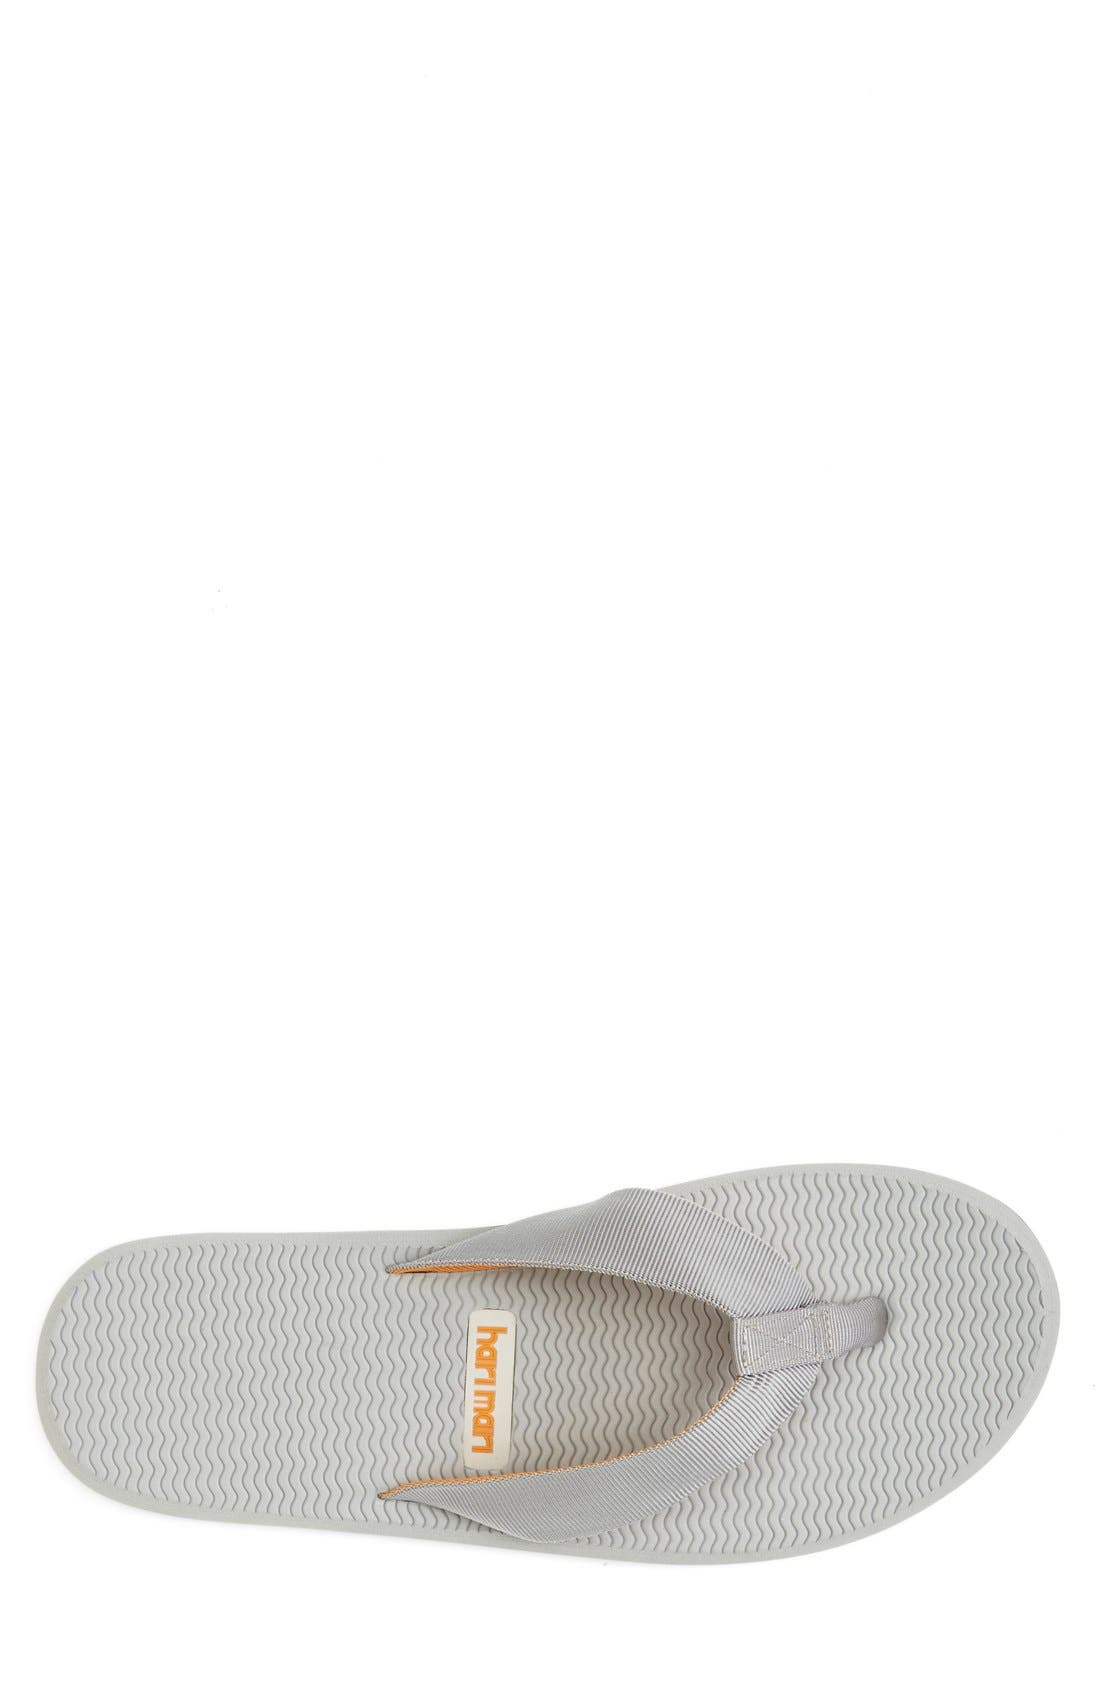 'Dunes' Flip Flop,                             Alternate thumbnail 3, color,                             Grey/ Blue/ Orange